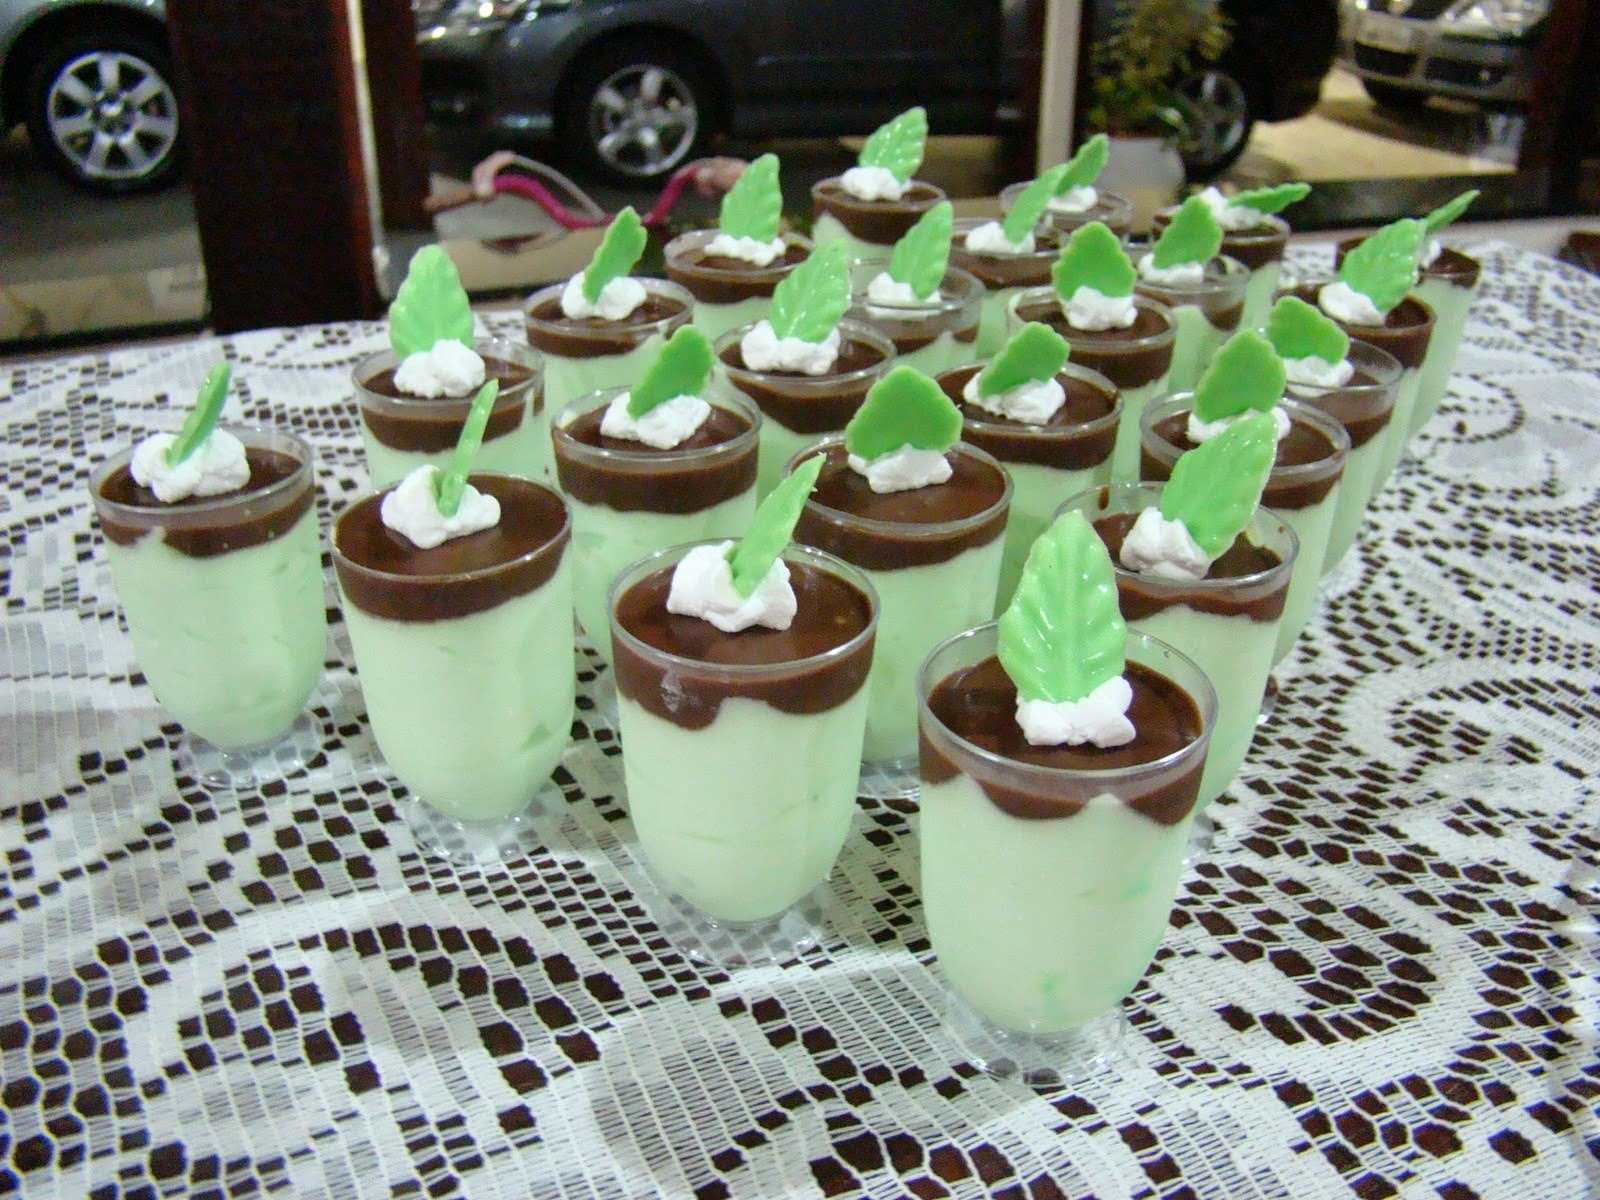 Mousse de Menta com Chocolate